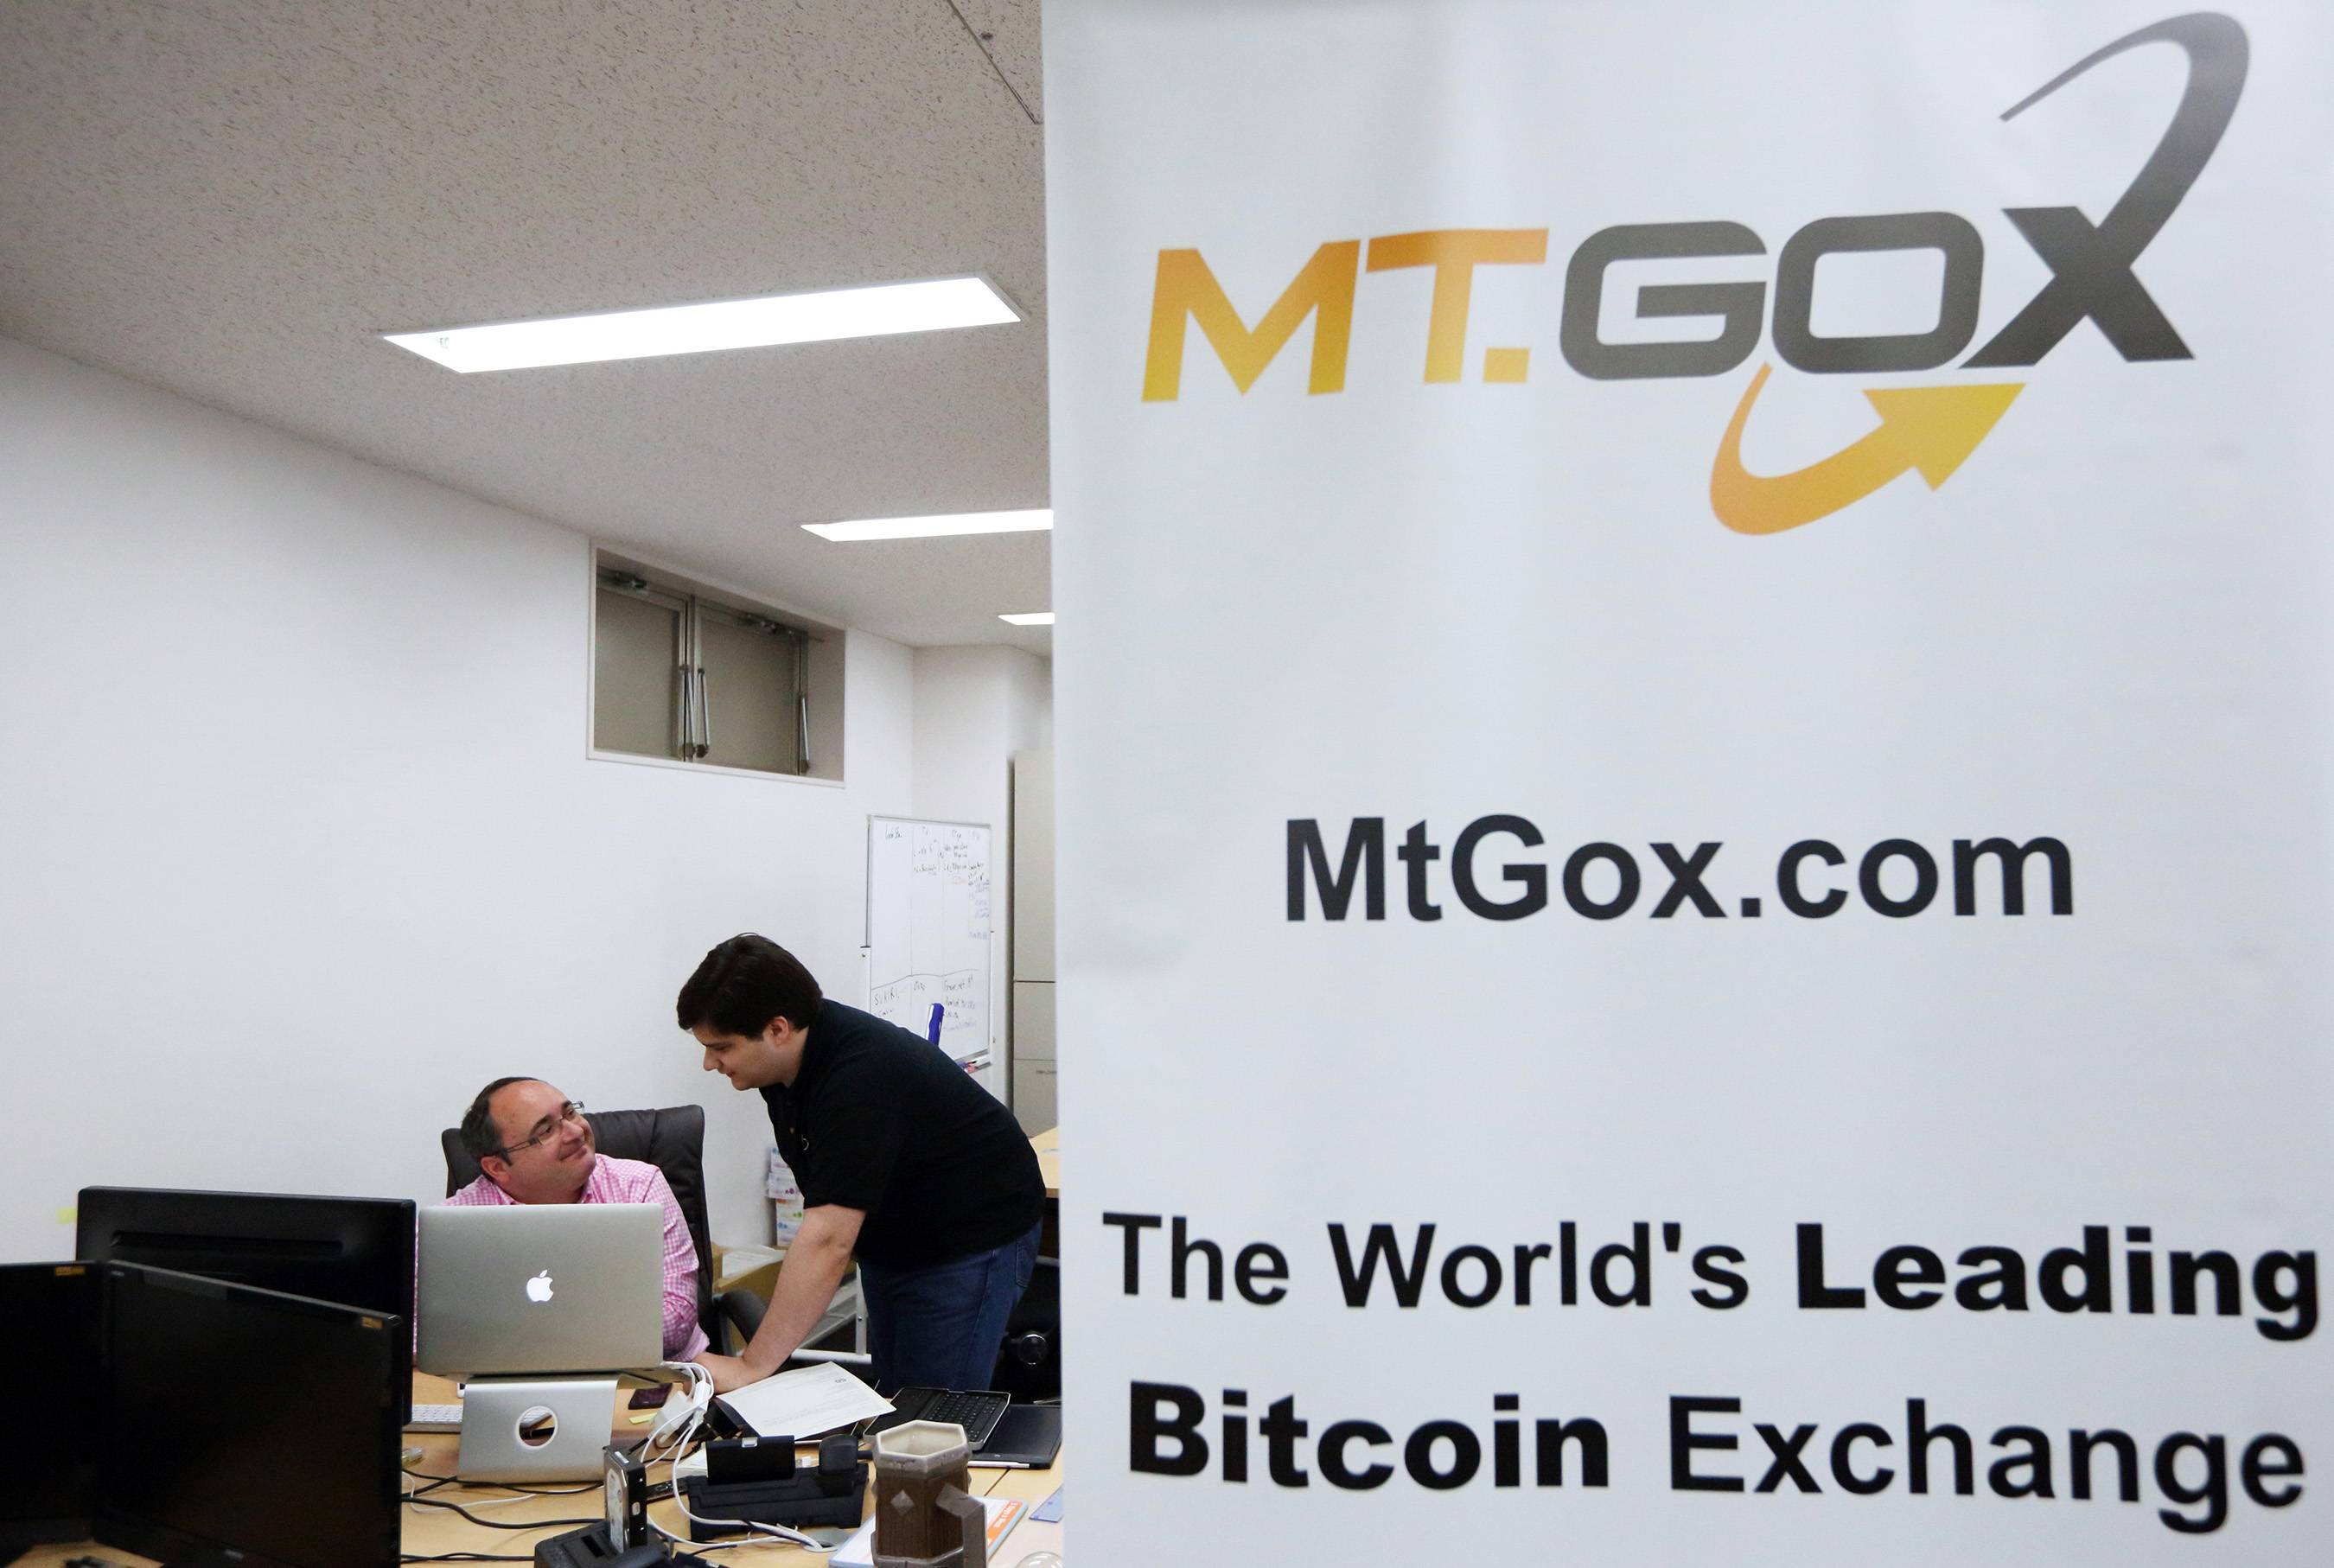 Mark Karpeles, chief executive officer of Tibanne Co., right, speaks to an employee in the office operating the Mt.Gox K.K. bitcoin exchange in Tokyo, Japan, in April 2013. Bitcoin digital currency, which carries the unofficial ticker symbol of BTC, was unveiled in 2009 by an unidentified programmer, or group of programmers, under the name of Satoshi Nakamoto. Supply is capped